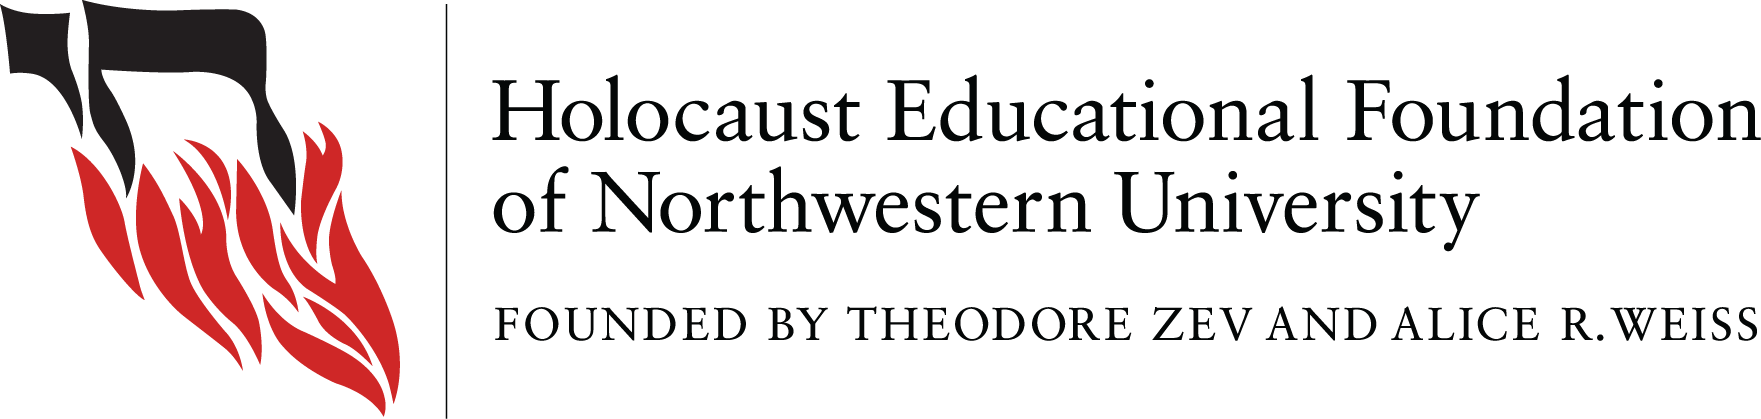 Holocaust Educational Foundation of Northwestern University logo